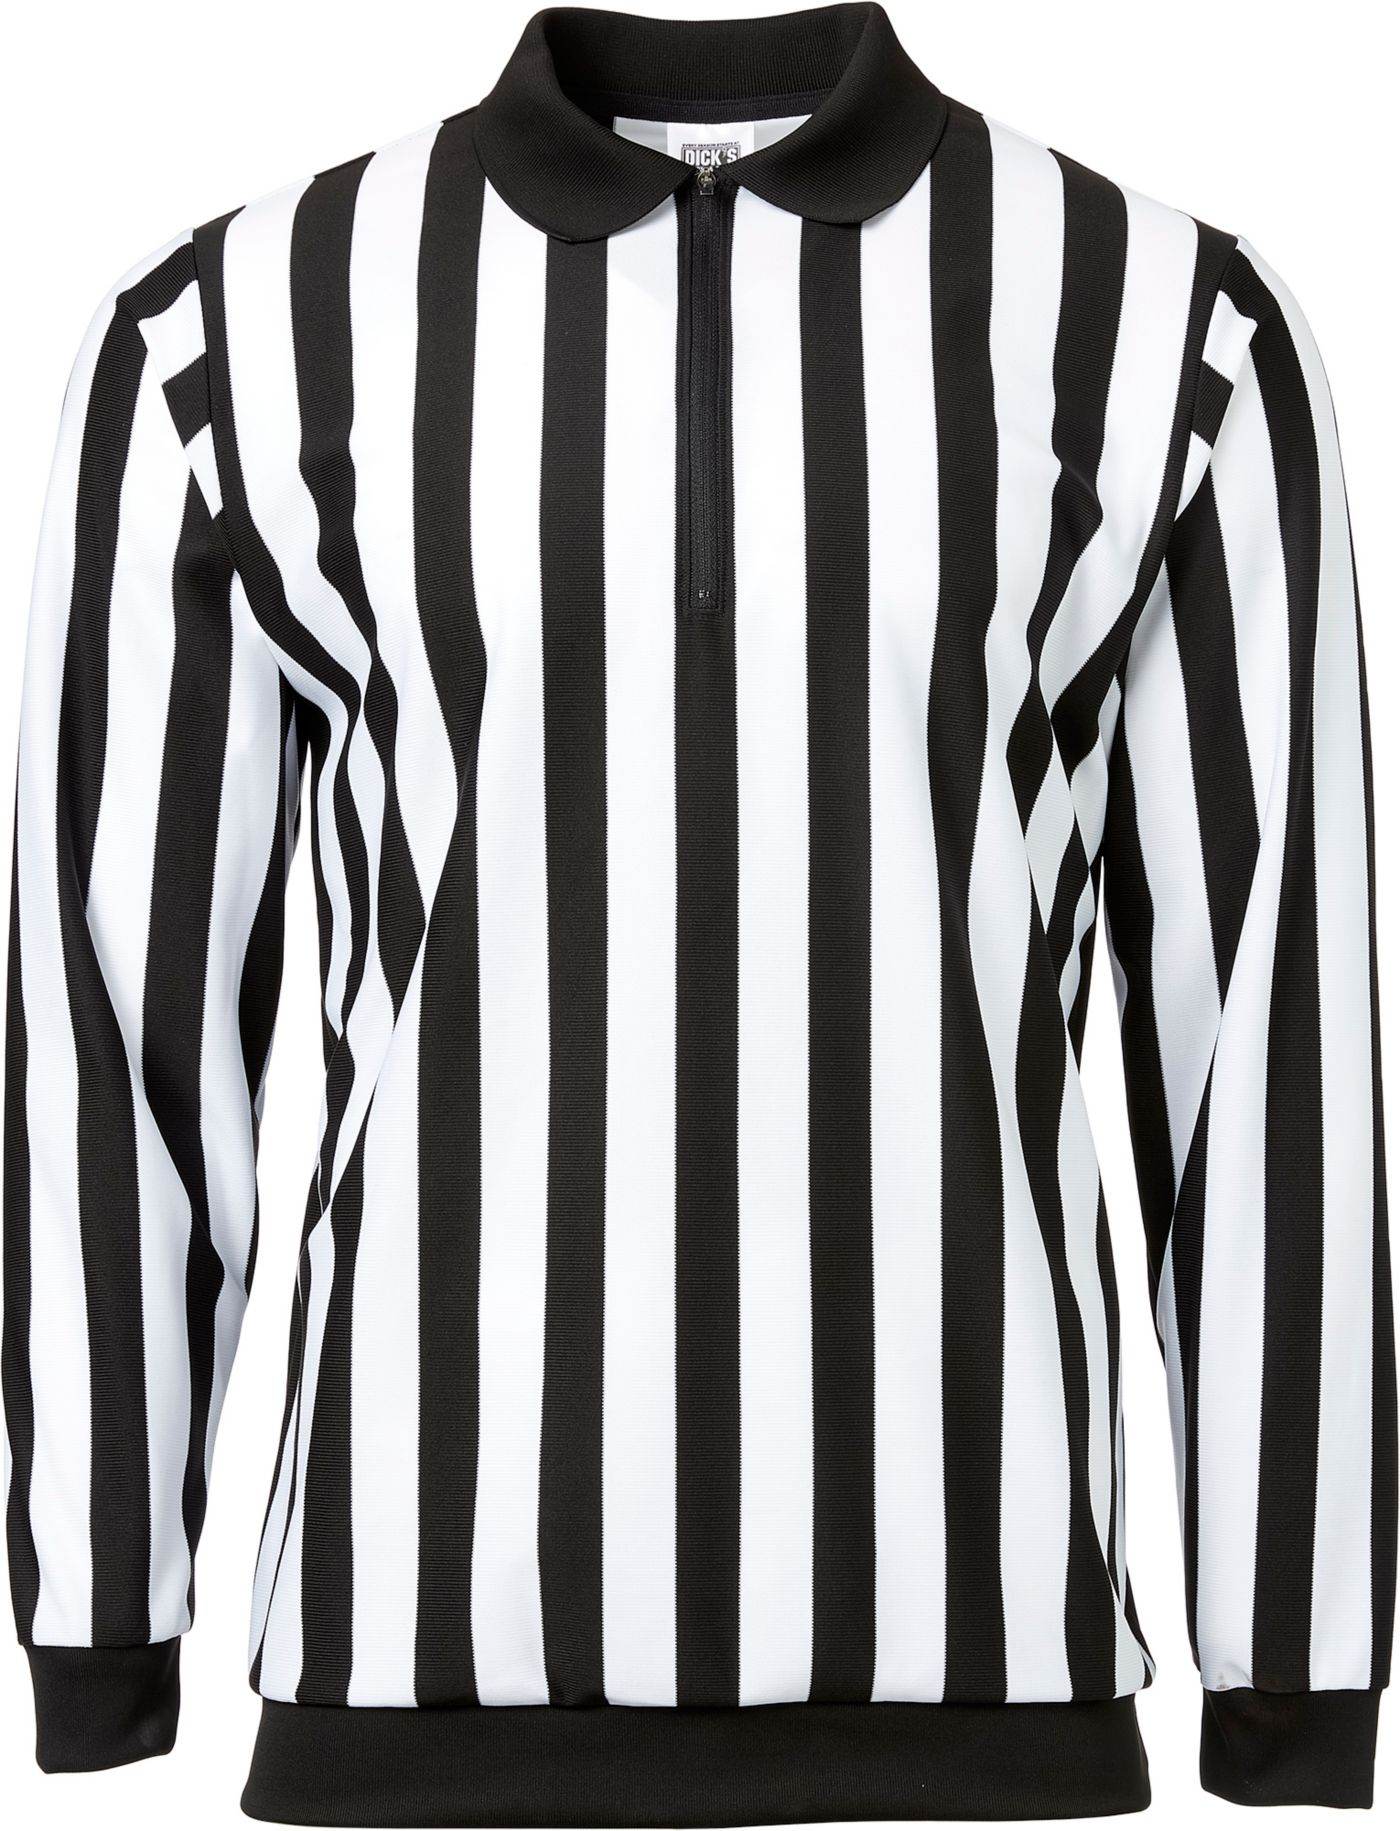 DICK'S Sporting Goods Adult Long Sleeve Referee Shirt